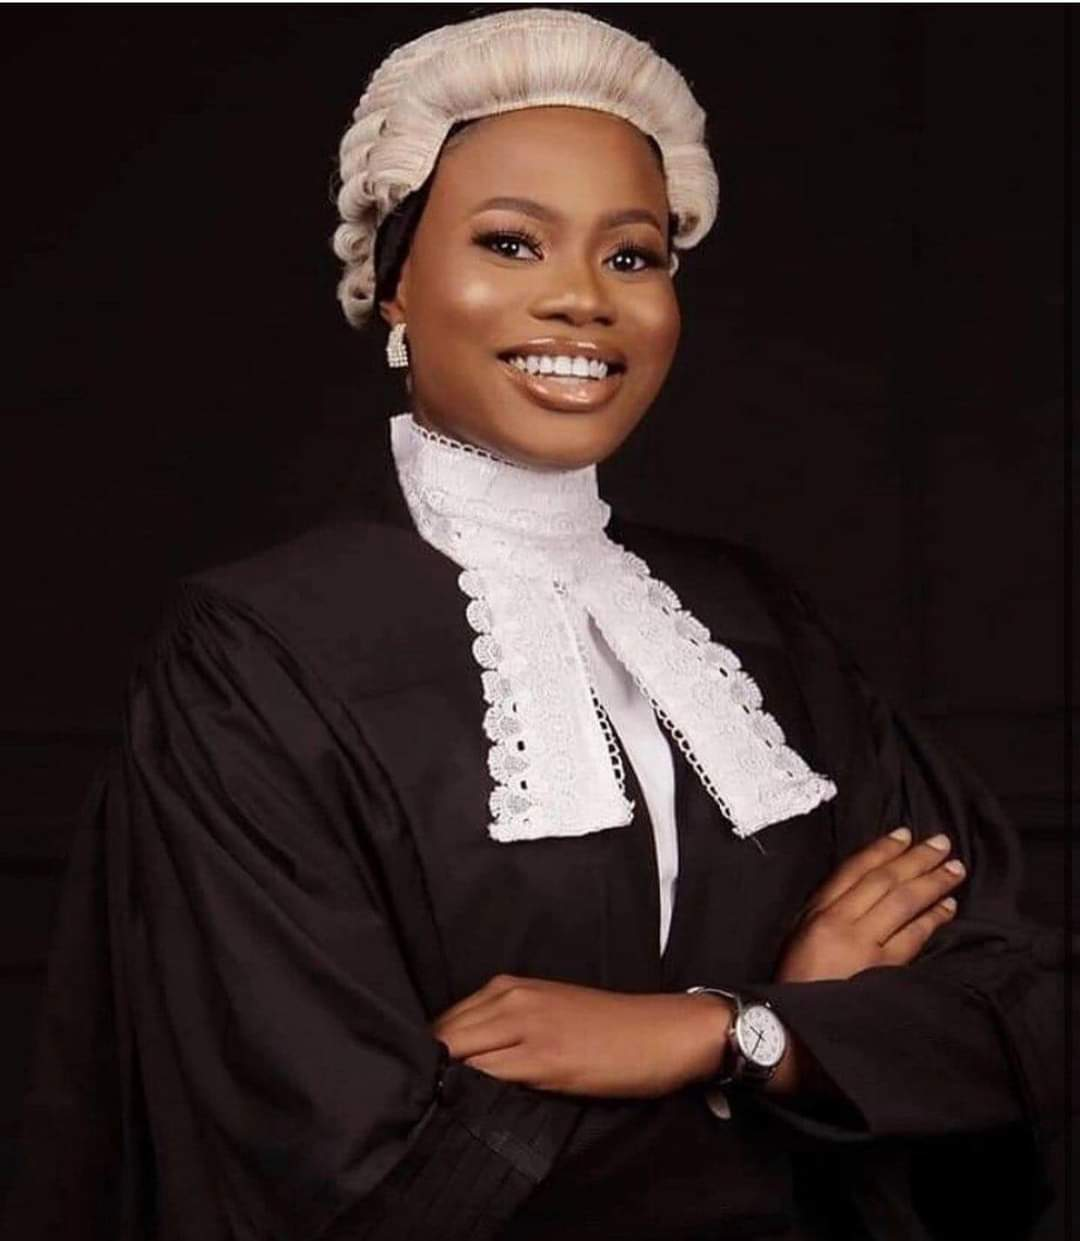 Meet Barr Bukola Who Has Won Best Graduating Student In All Schools She Attended Including Law School Where She Won 16 Awards